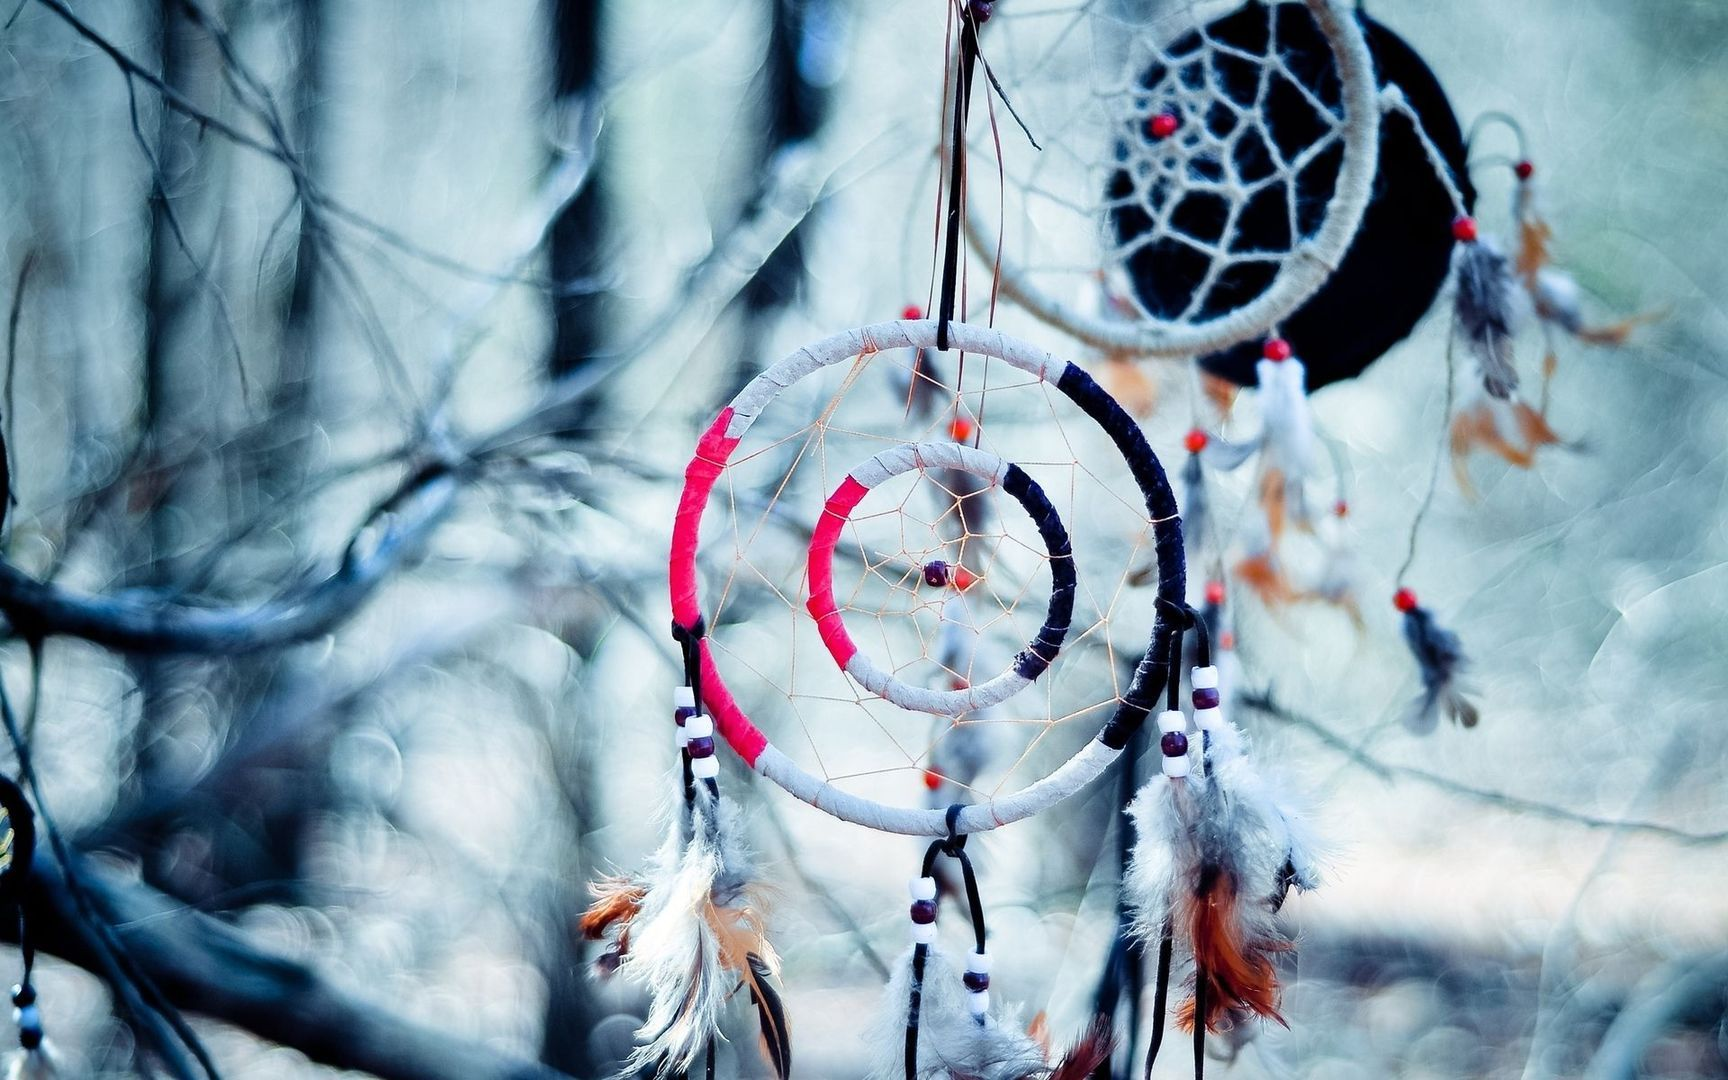 Dreamcatcher HD Magnificent Wallpaper Free - Download Dreamcatcher ...